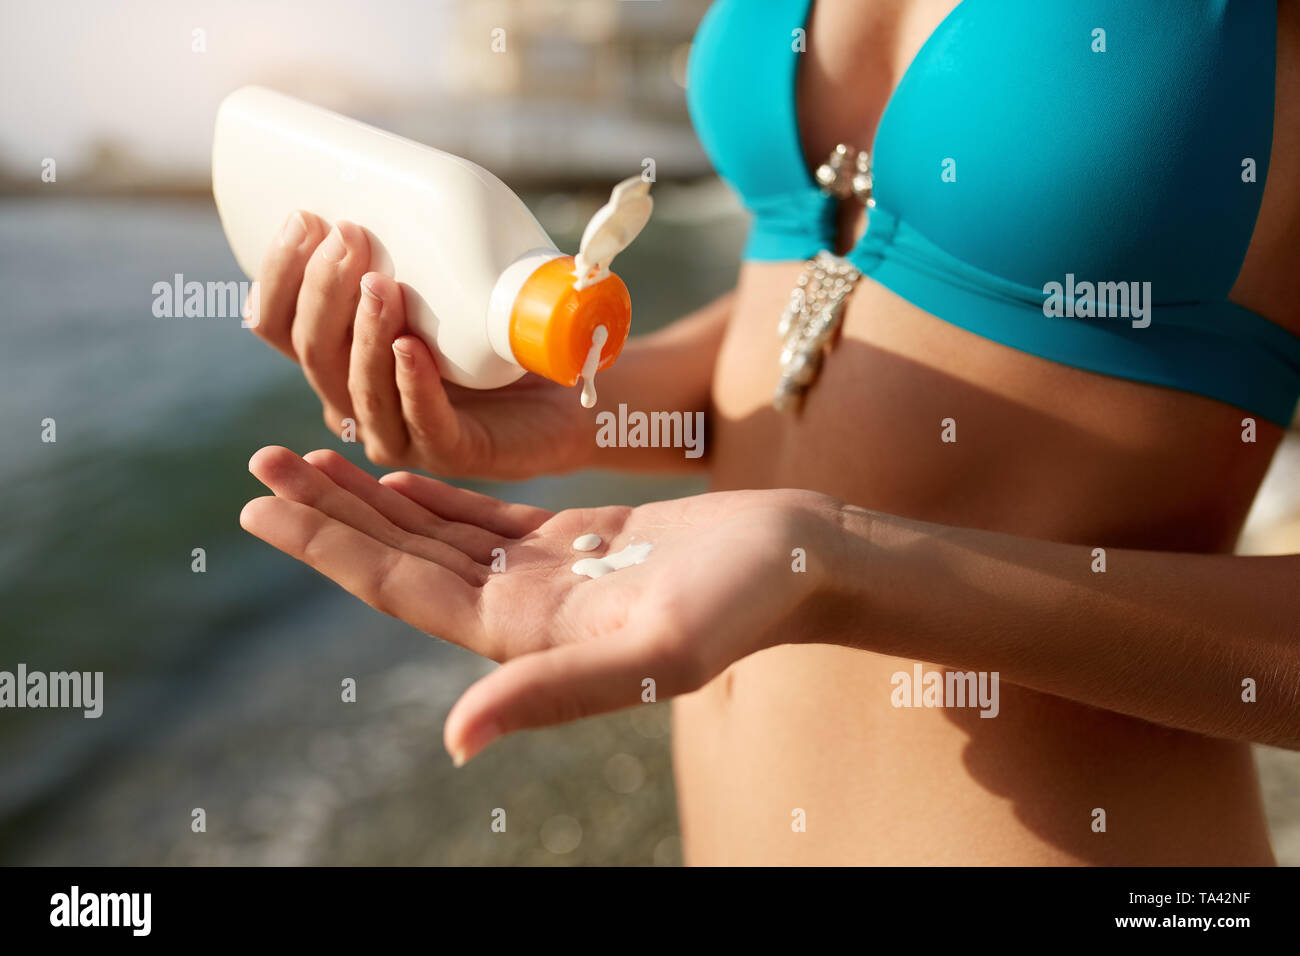 Woman hands putting sunscreen from a suntan cream bottle. Caucasian female squeeze suncream on her hand. Tanned girl wearing blue bikini swimsuit on t - Stock Image